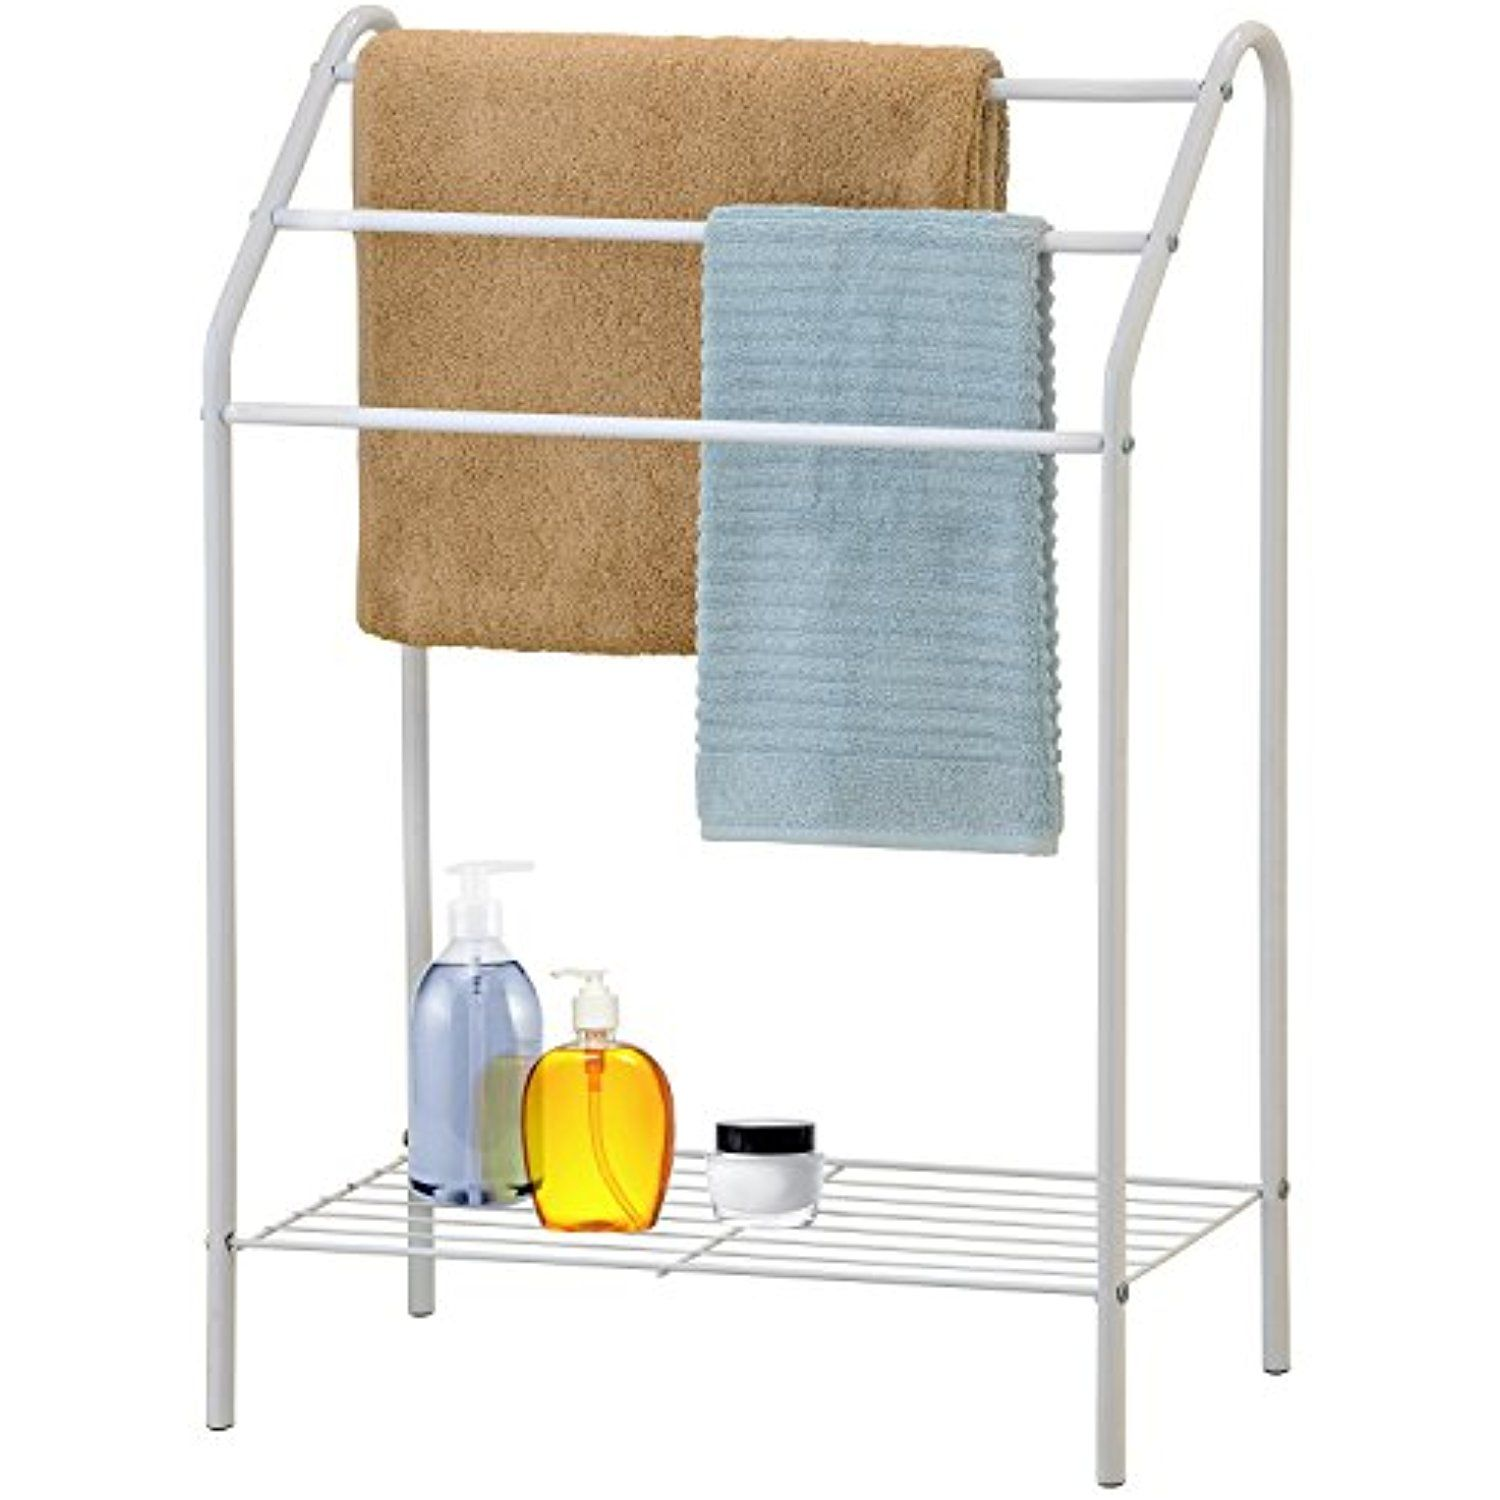 Freestanding 3 Tier Metal Towel Rack, Chrome Bathroom Towel Bar ...